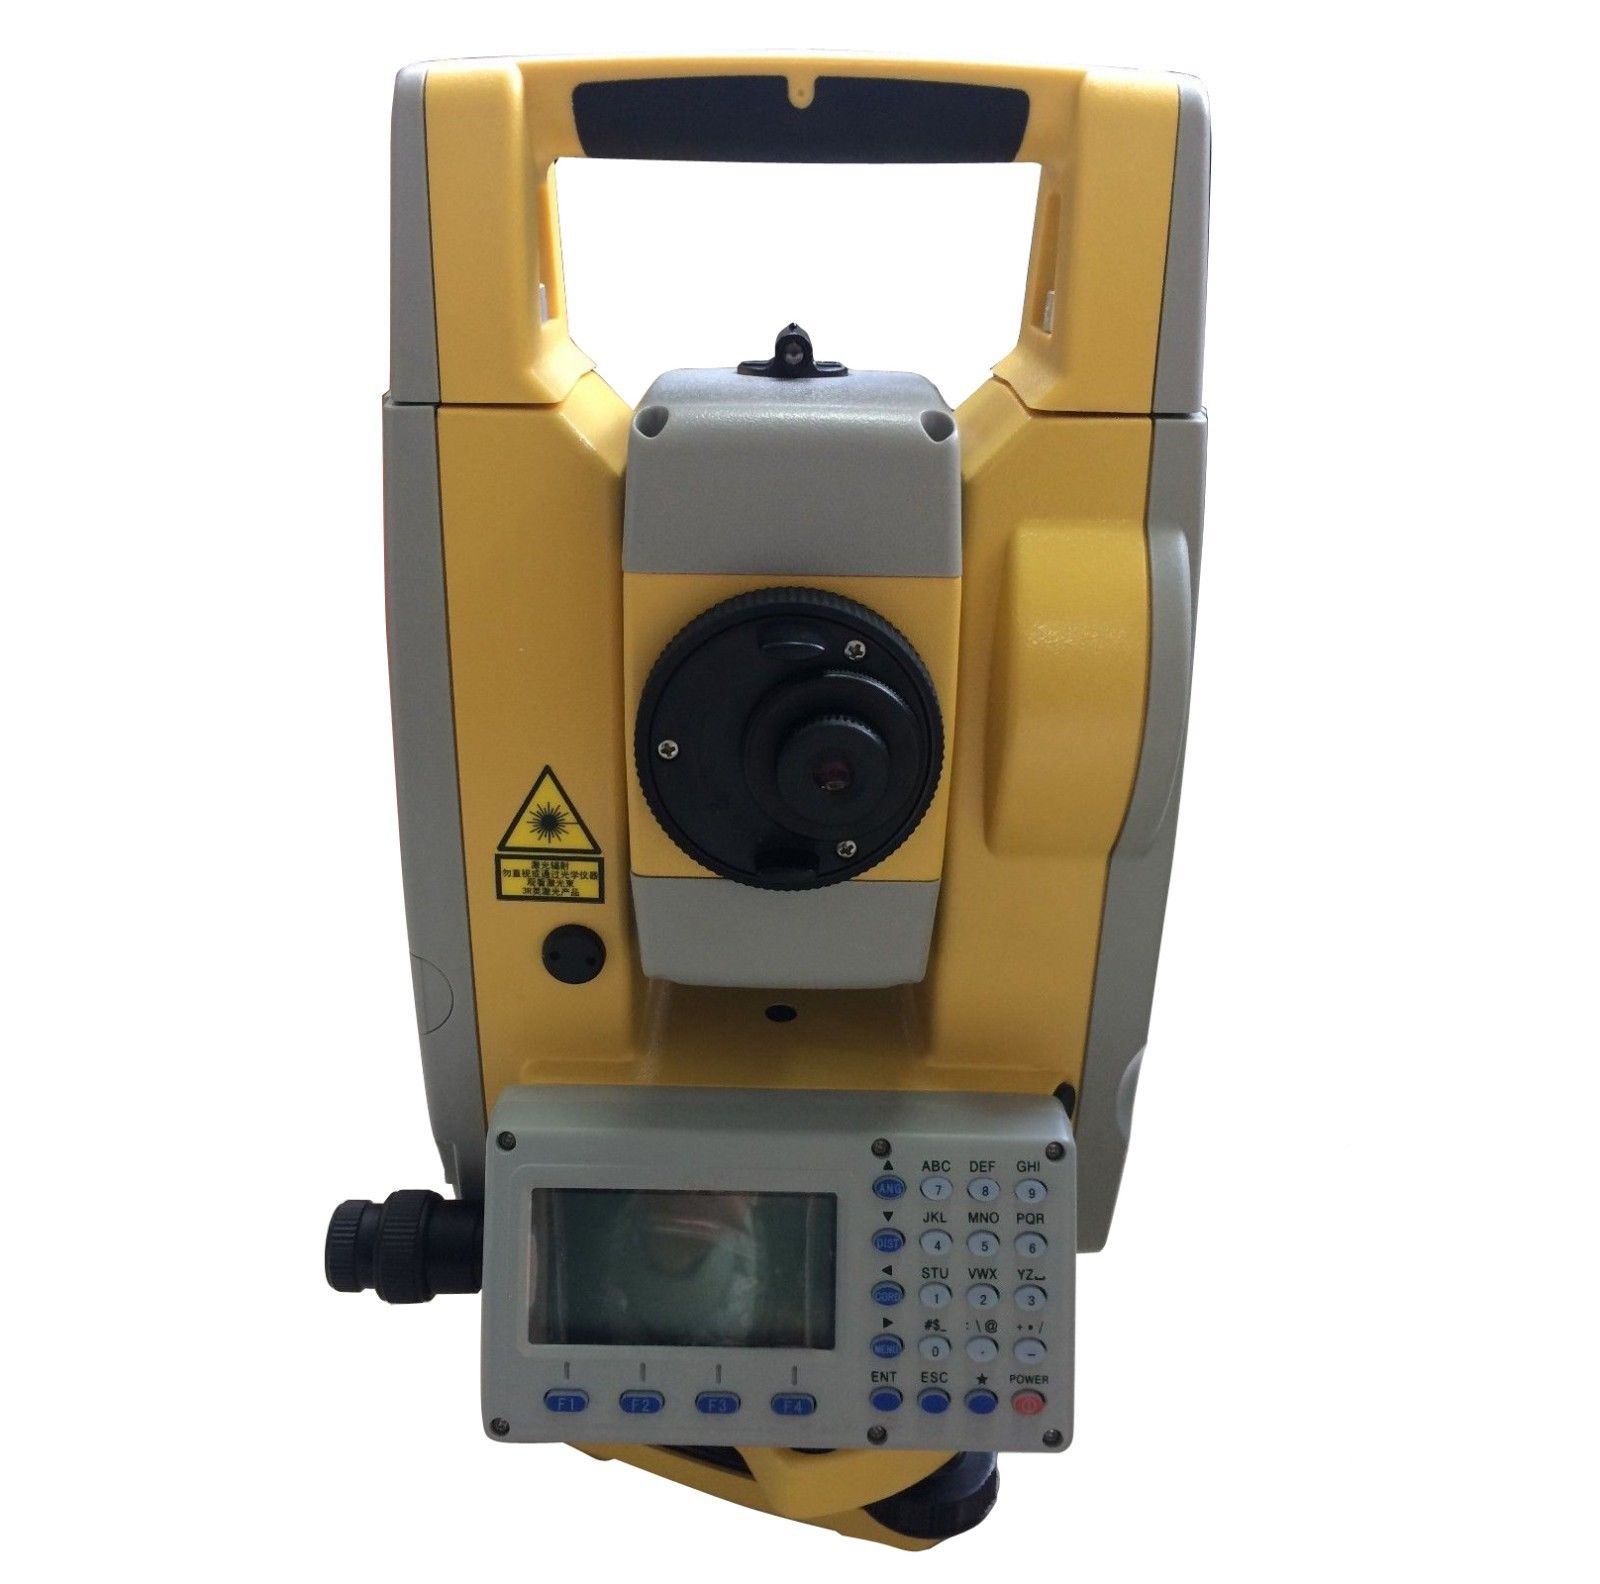 NEW SOUTH NTS 362R6LC total station Reflectorless total Station